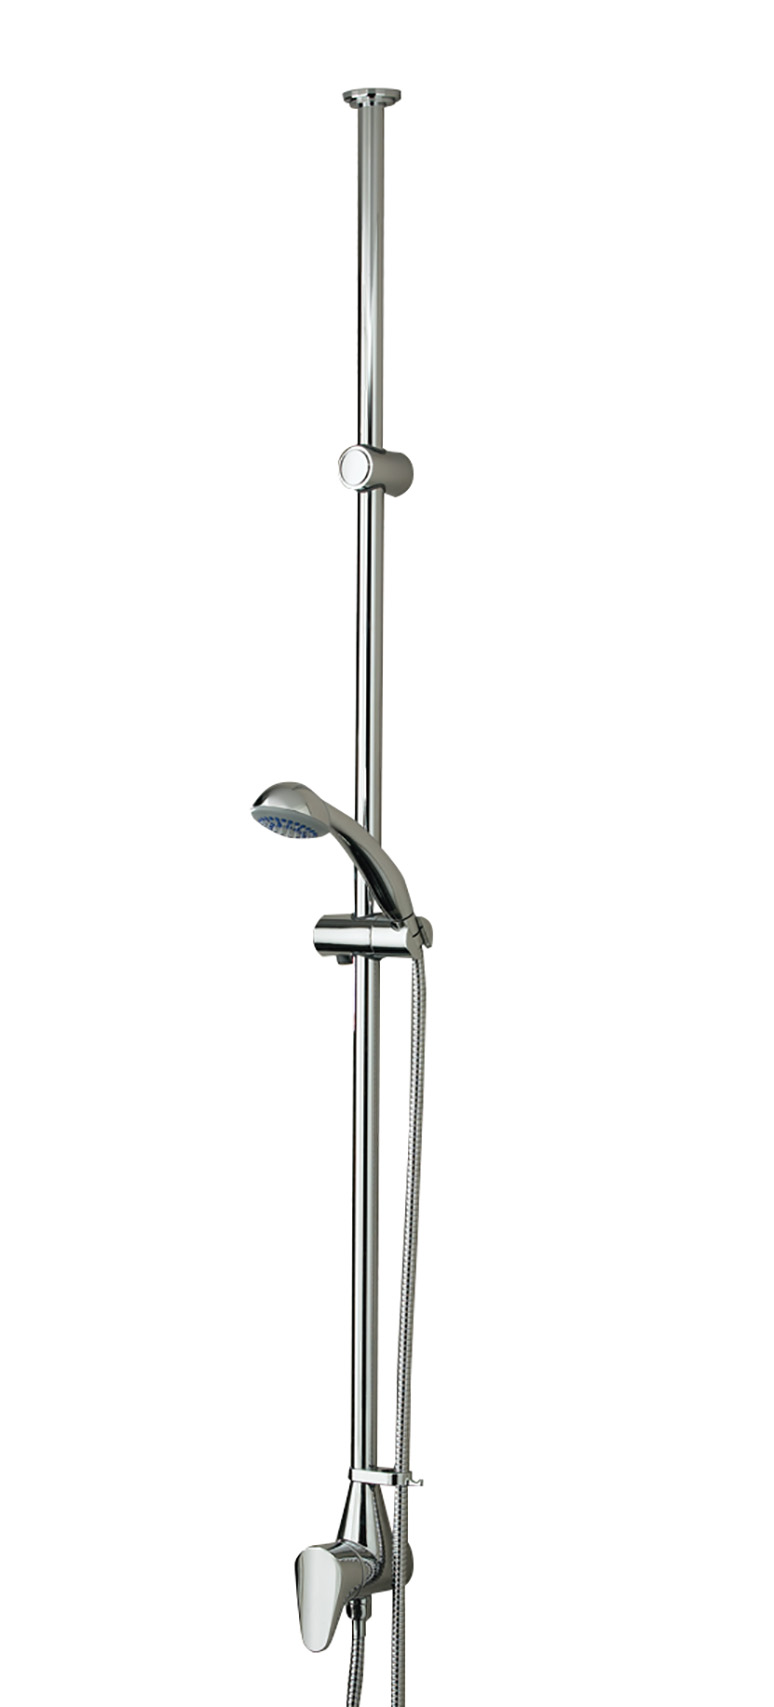 Thermostatic Exposed Ceiling Fed Shower